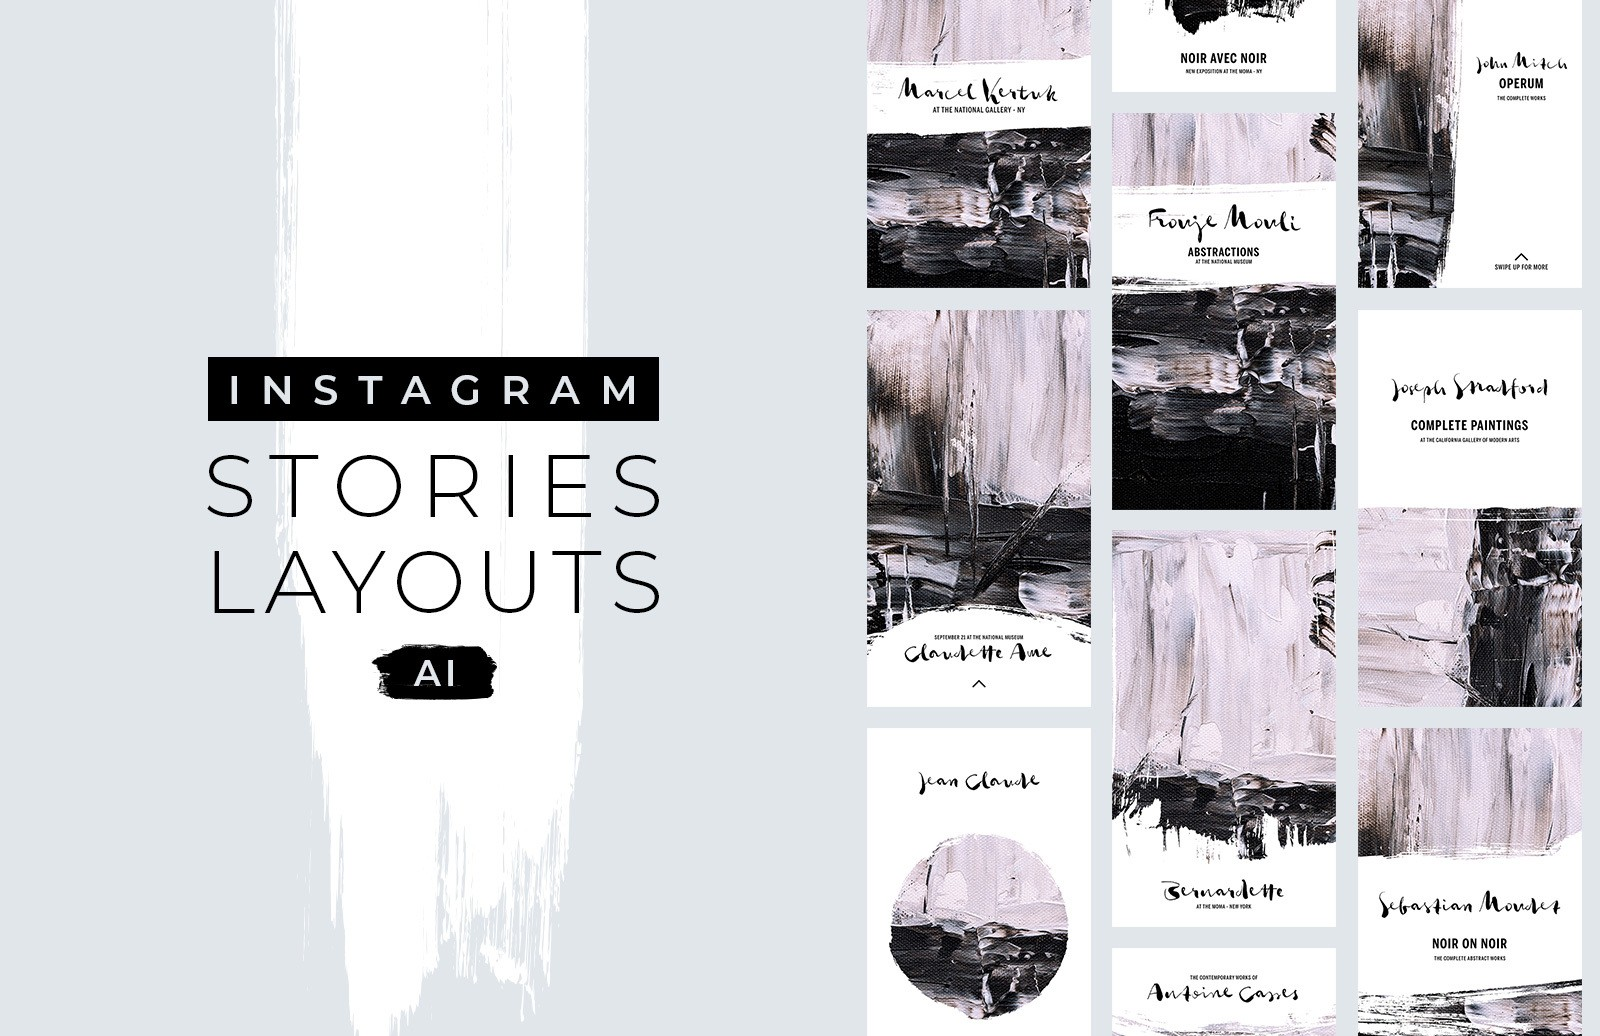 Instagram Stories Layouts - (AI)